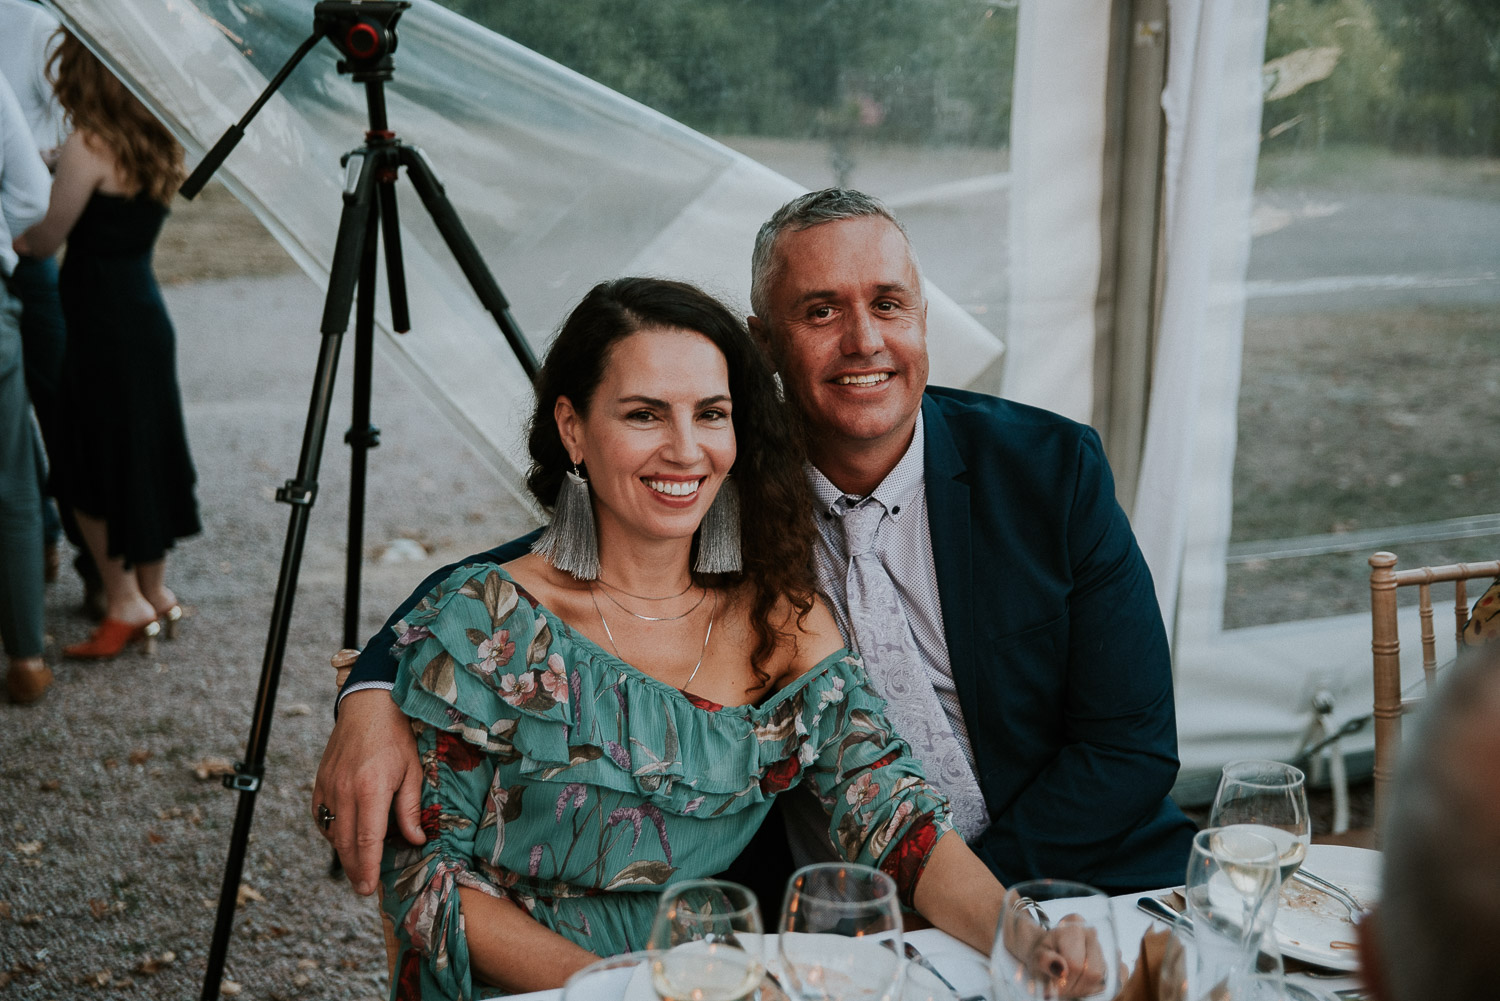 bergerac_wedding_katy_webb_photography_france_UK158